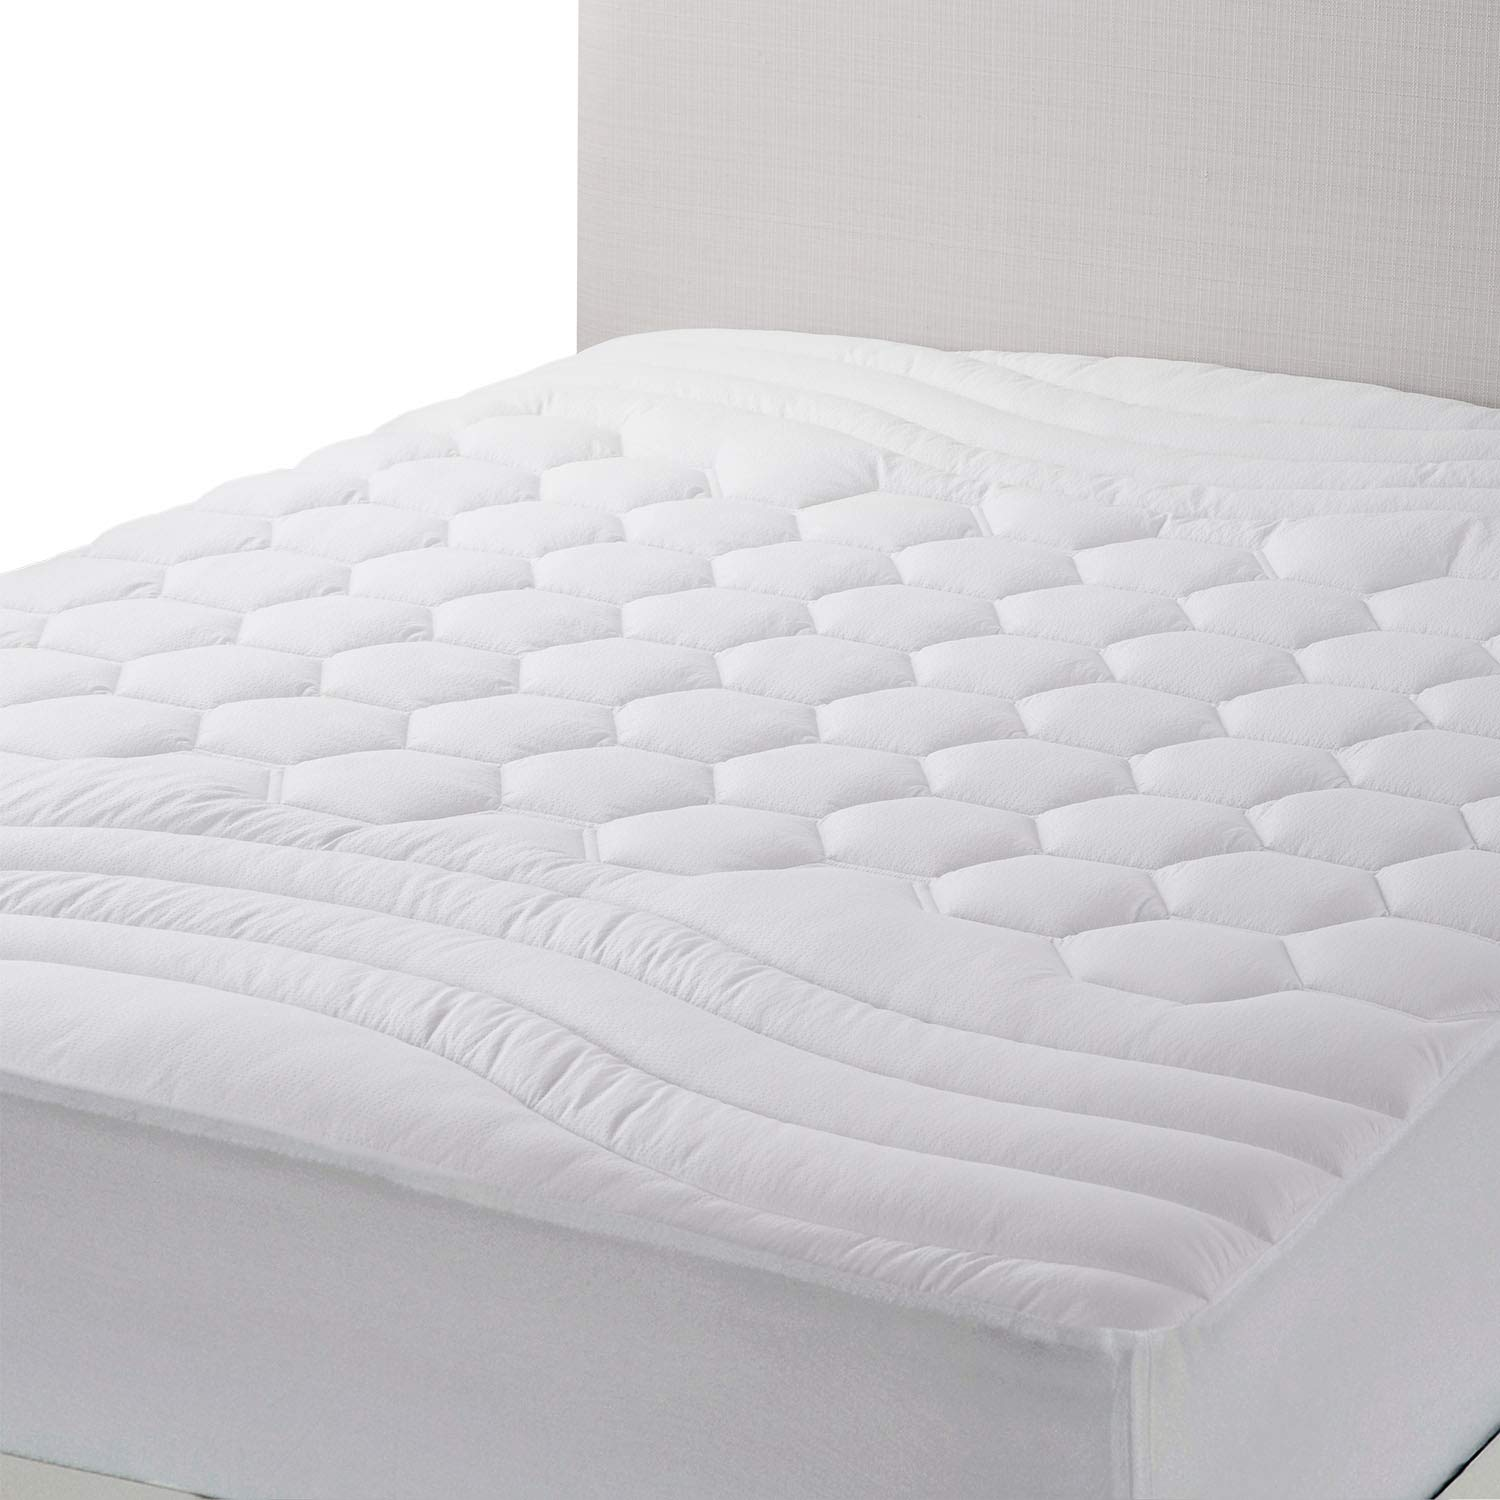 Excellent King Size Mattress Pad